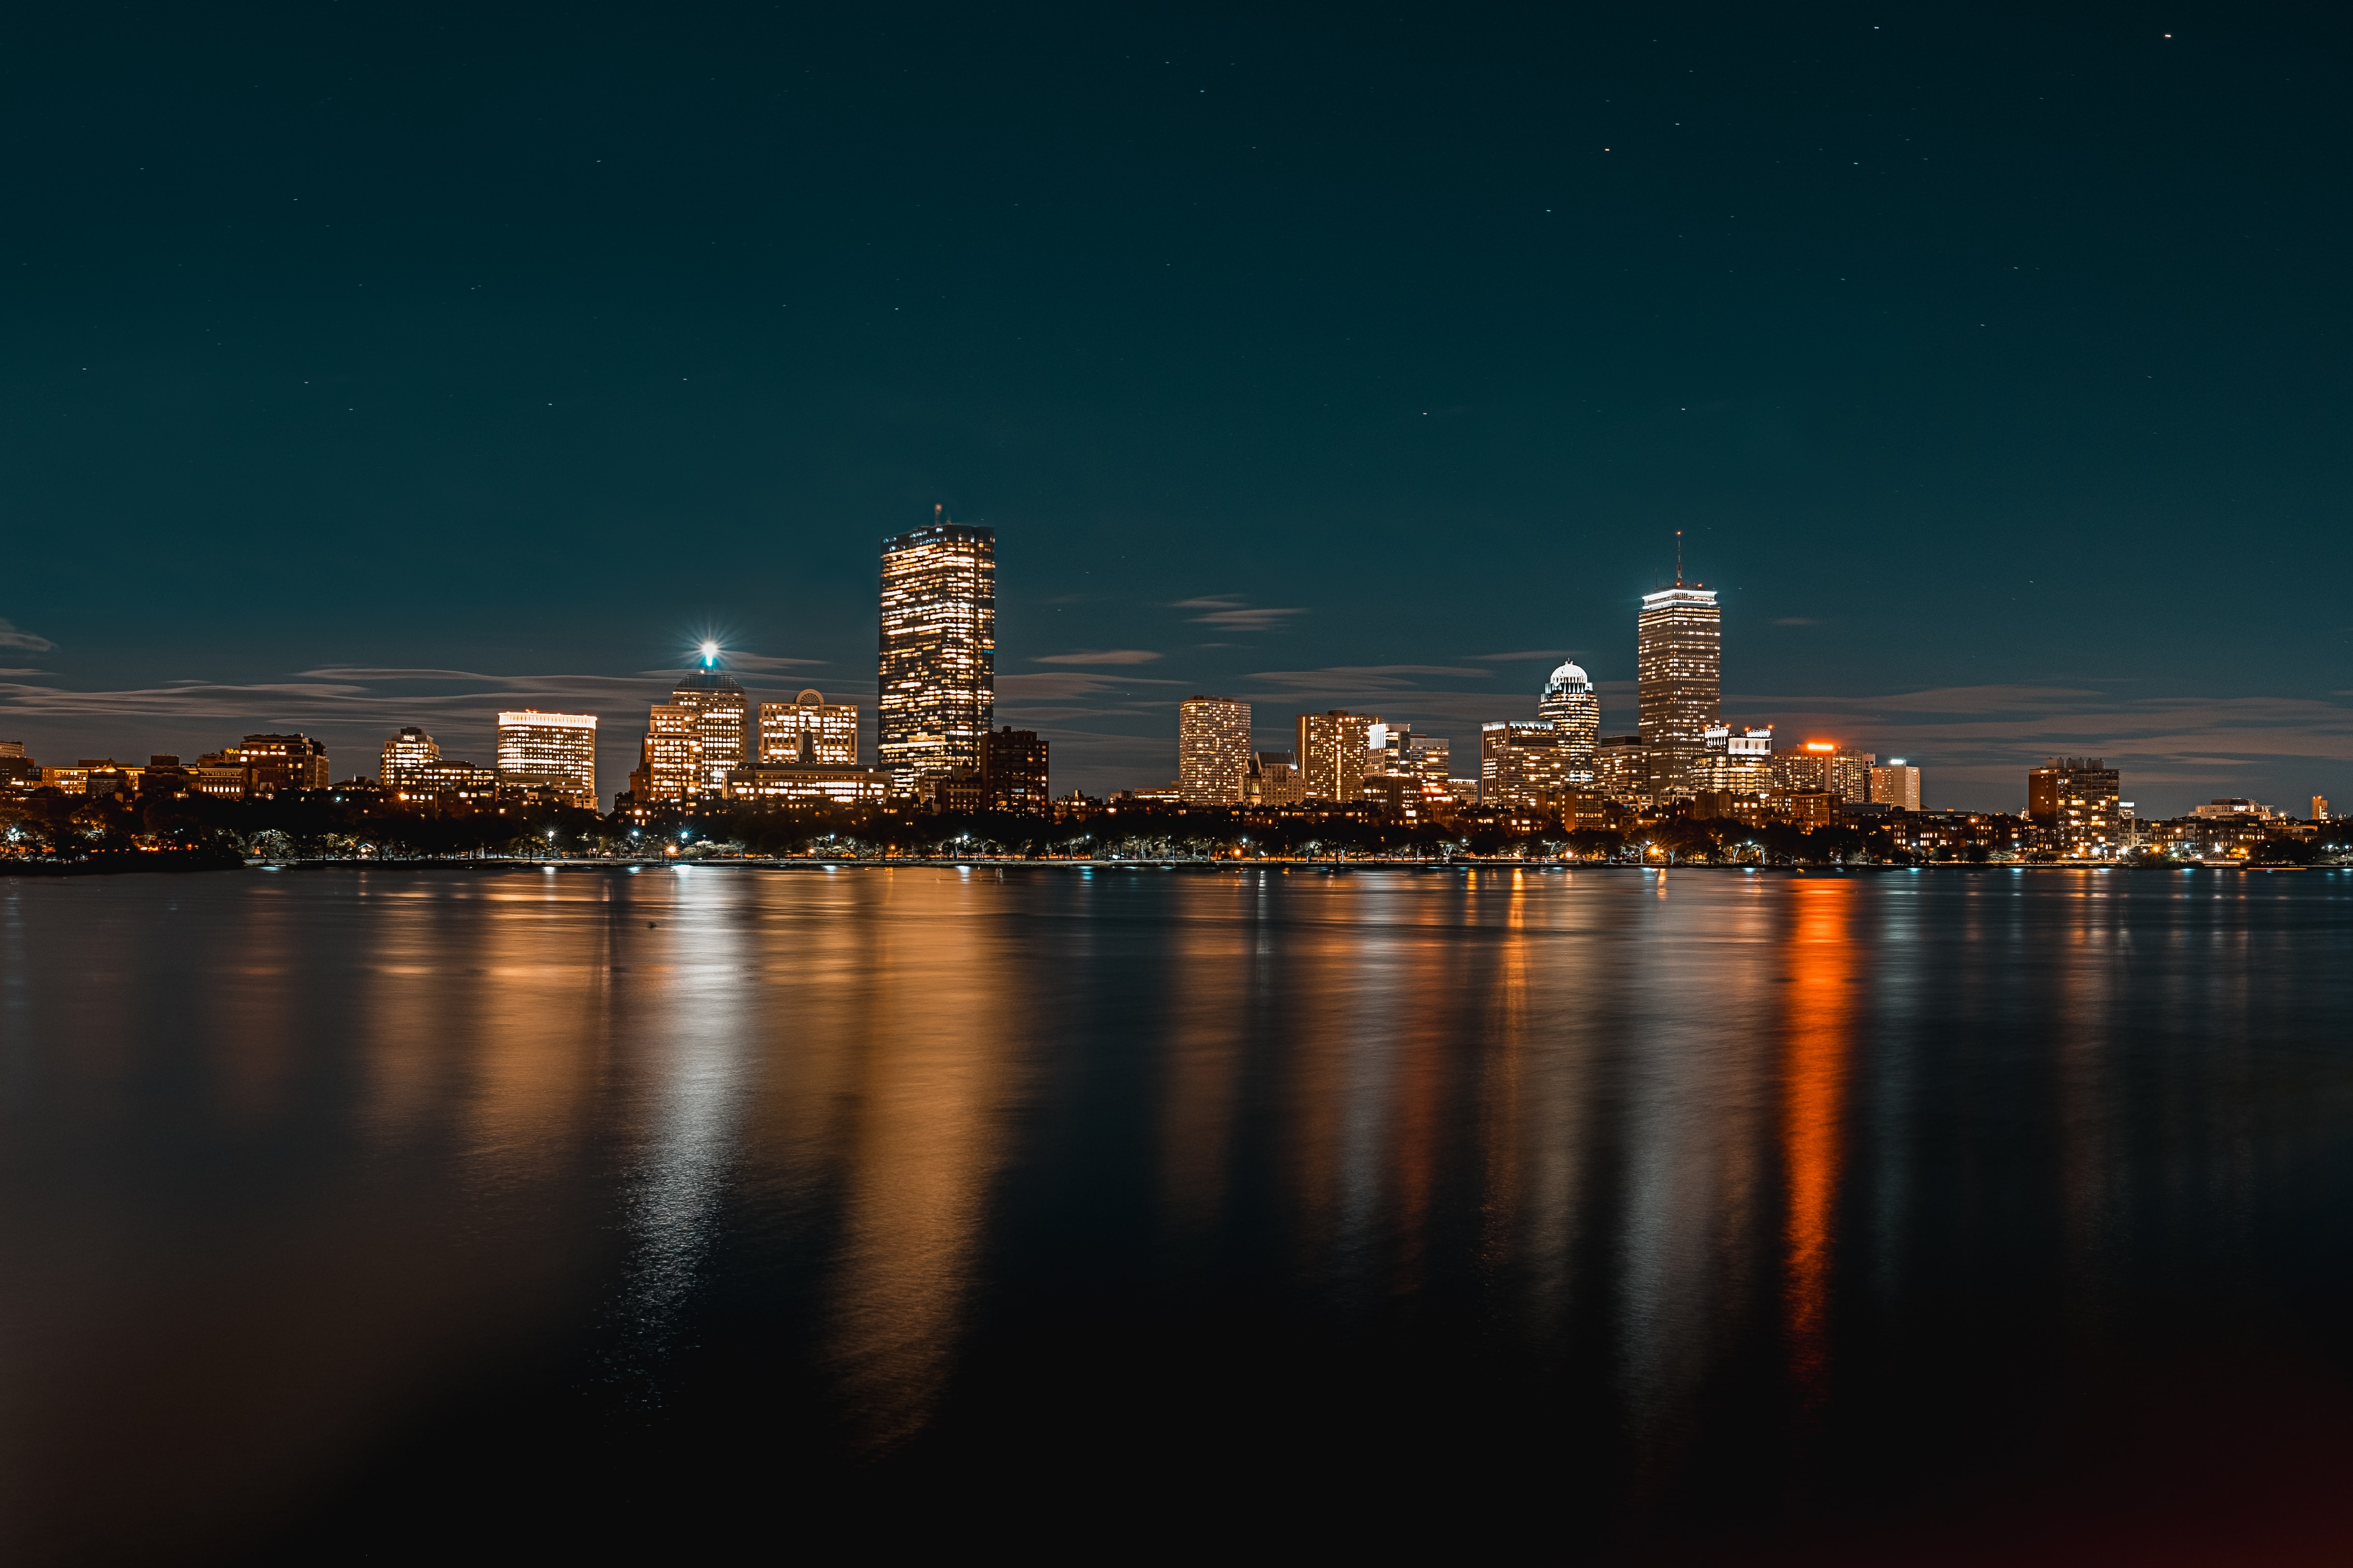 city buildings next to body of water during nighttime